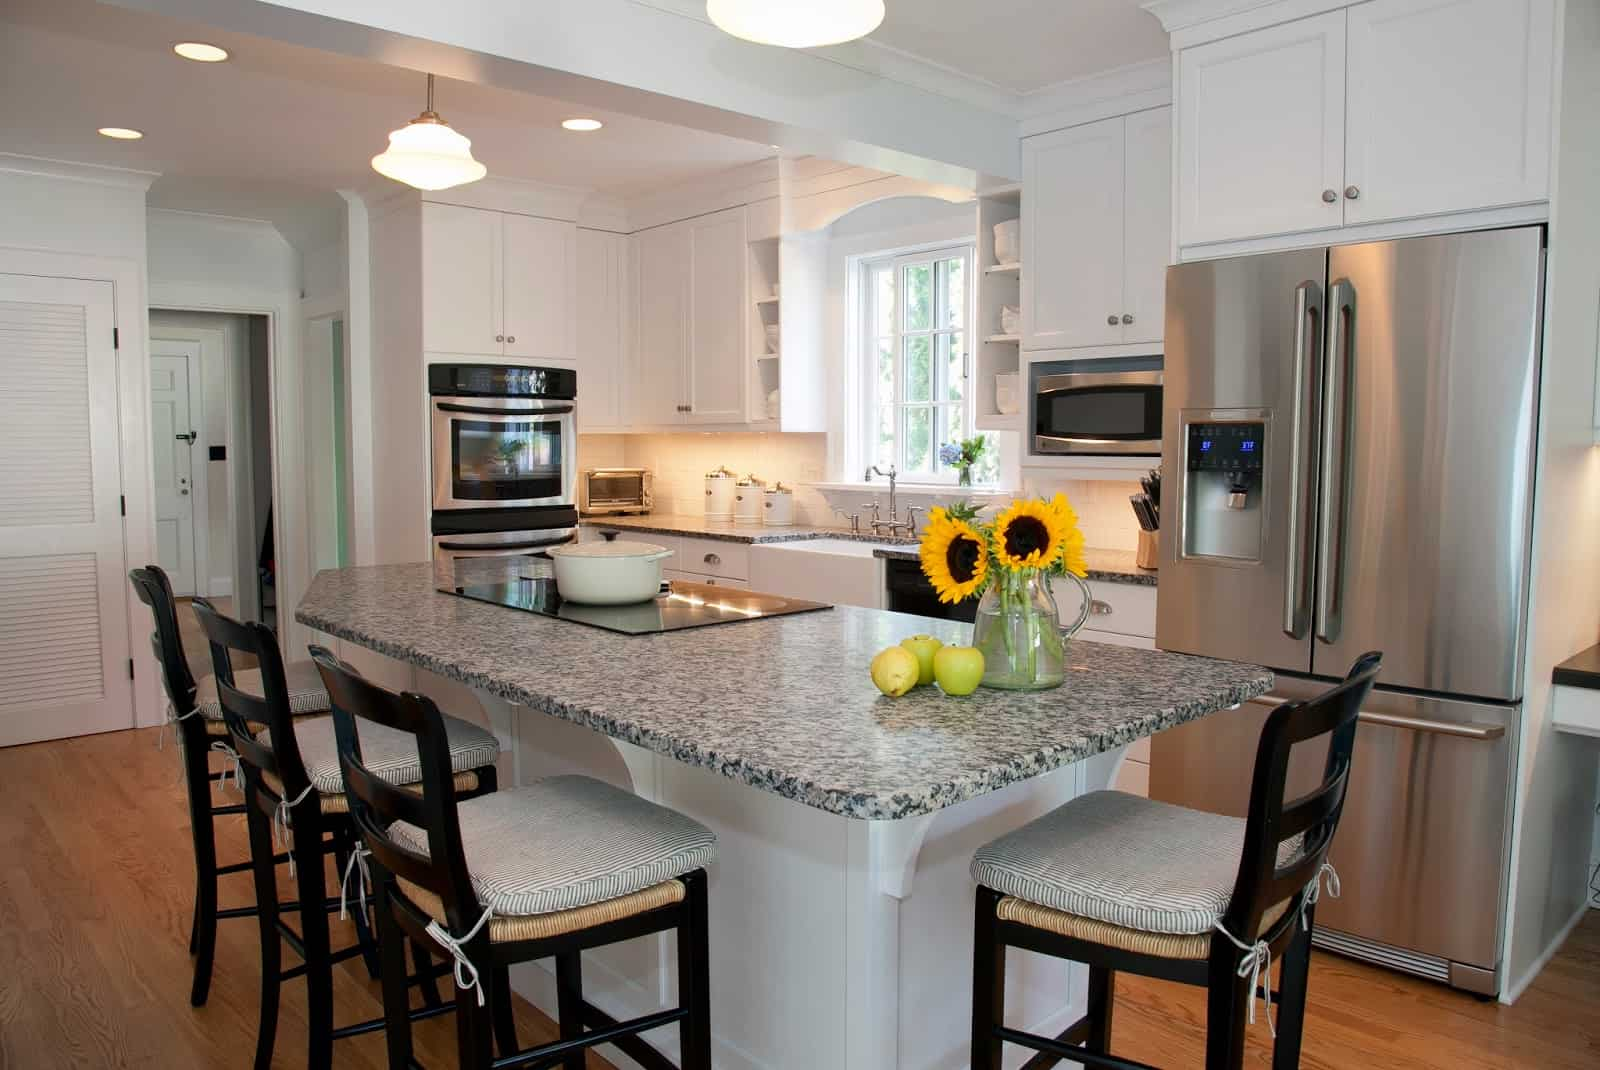 Amazing-Charming-White-Ribbons-Applied-For-Kitchen-Island-With-Seating-Combined-With-Glorious-Hanging-Lamps-On-Kitchen-Islands-With-Seating